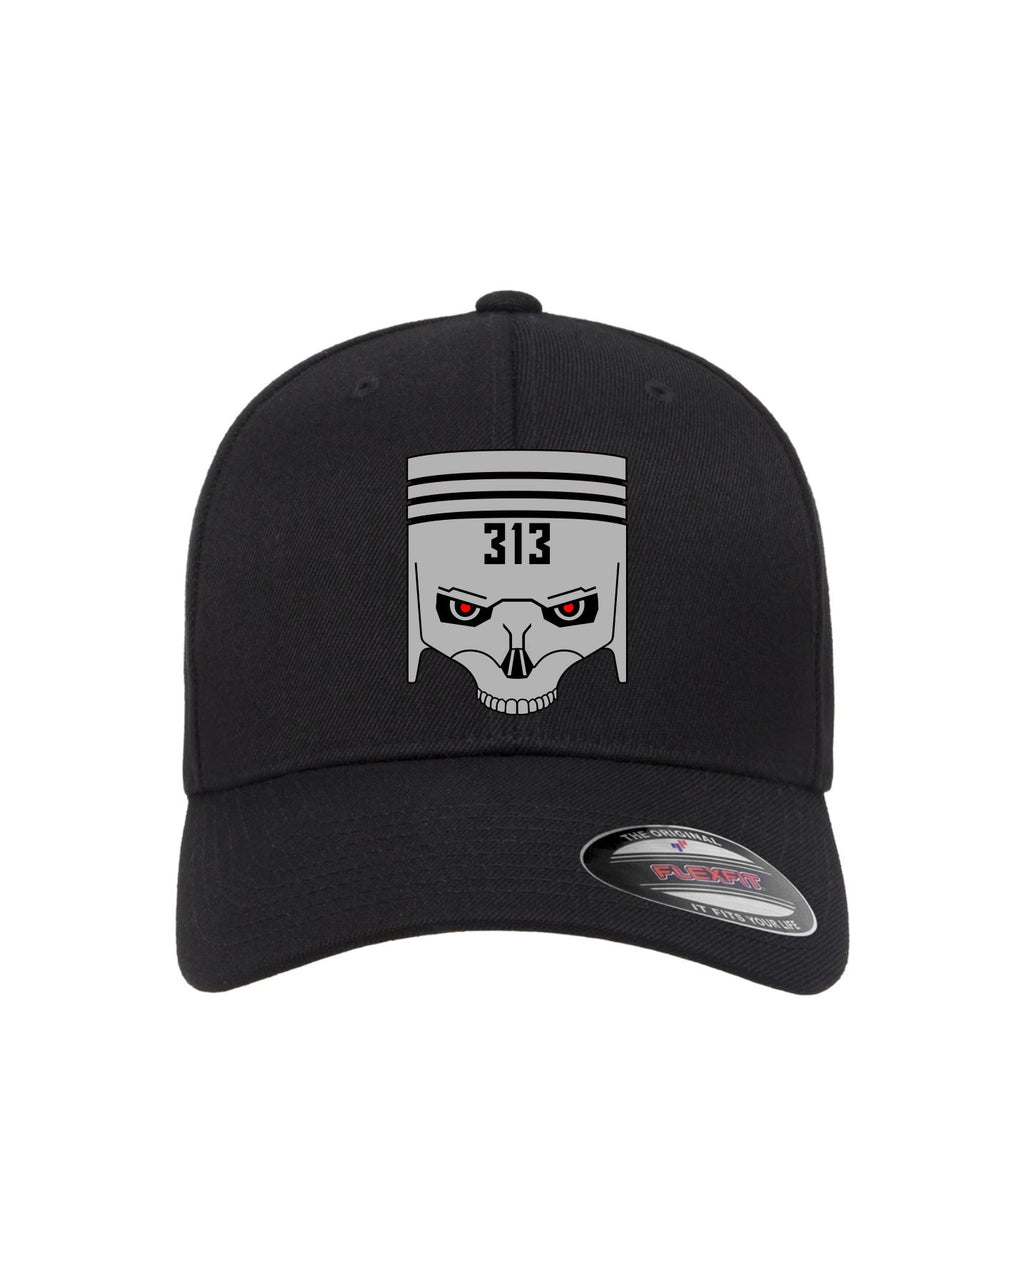 BIKE LIFE 313 FITTED HAT